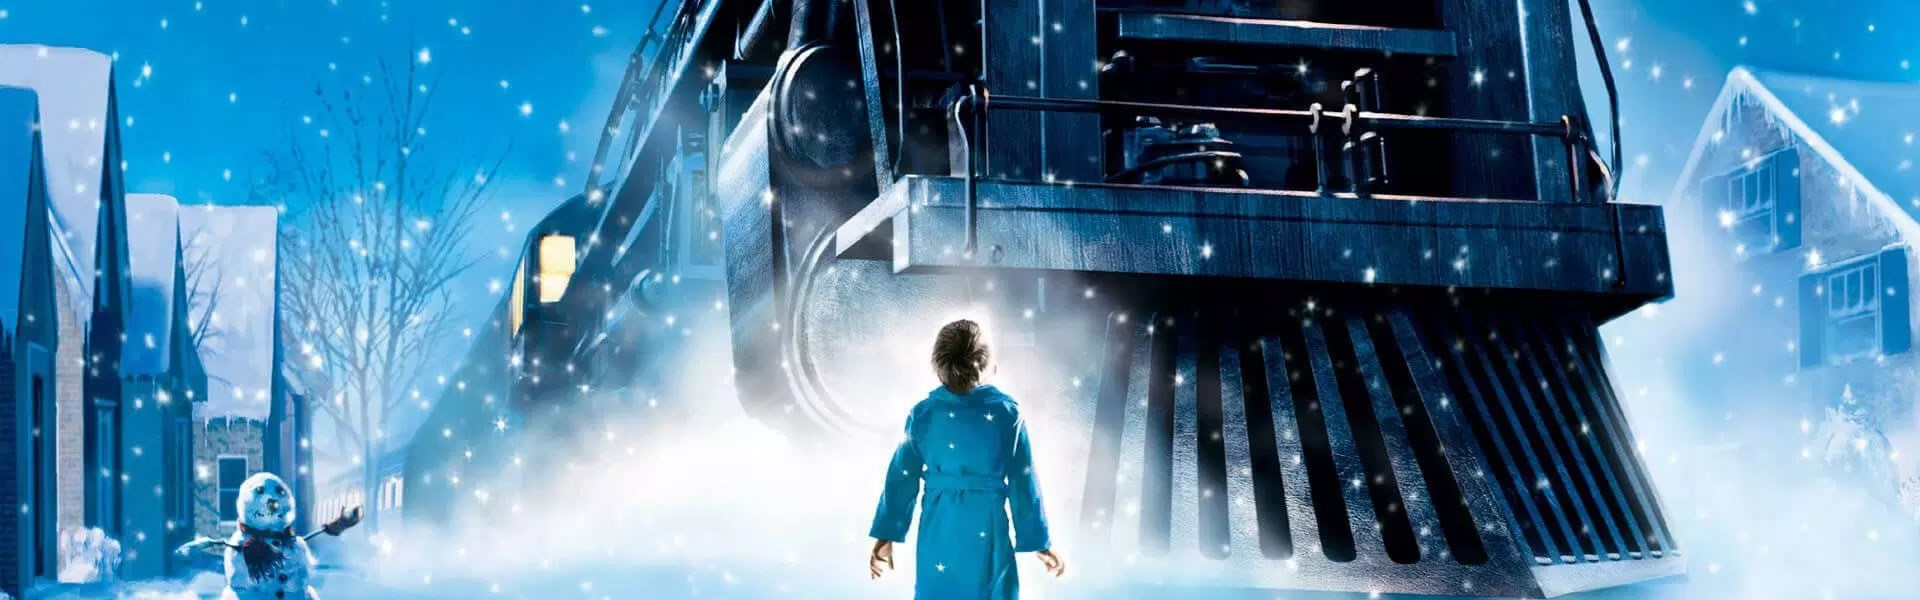 the-polar-express.jpg